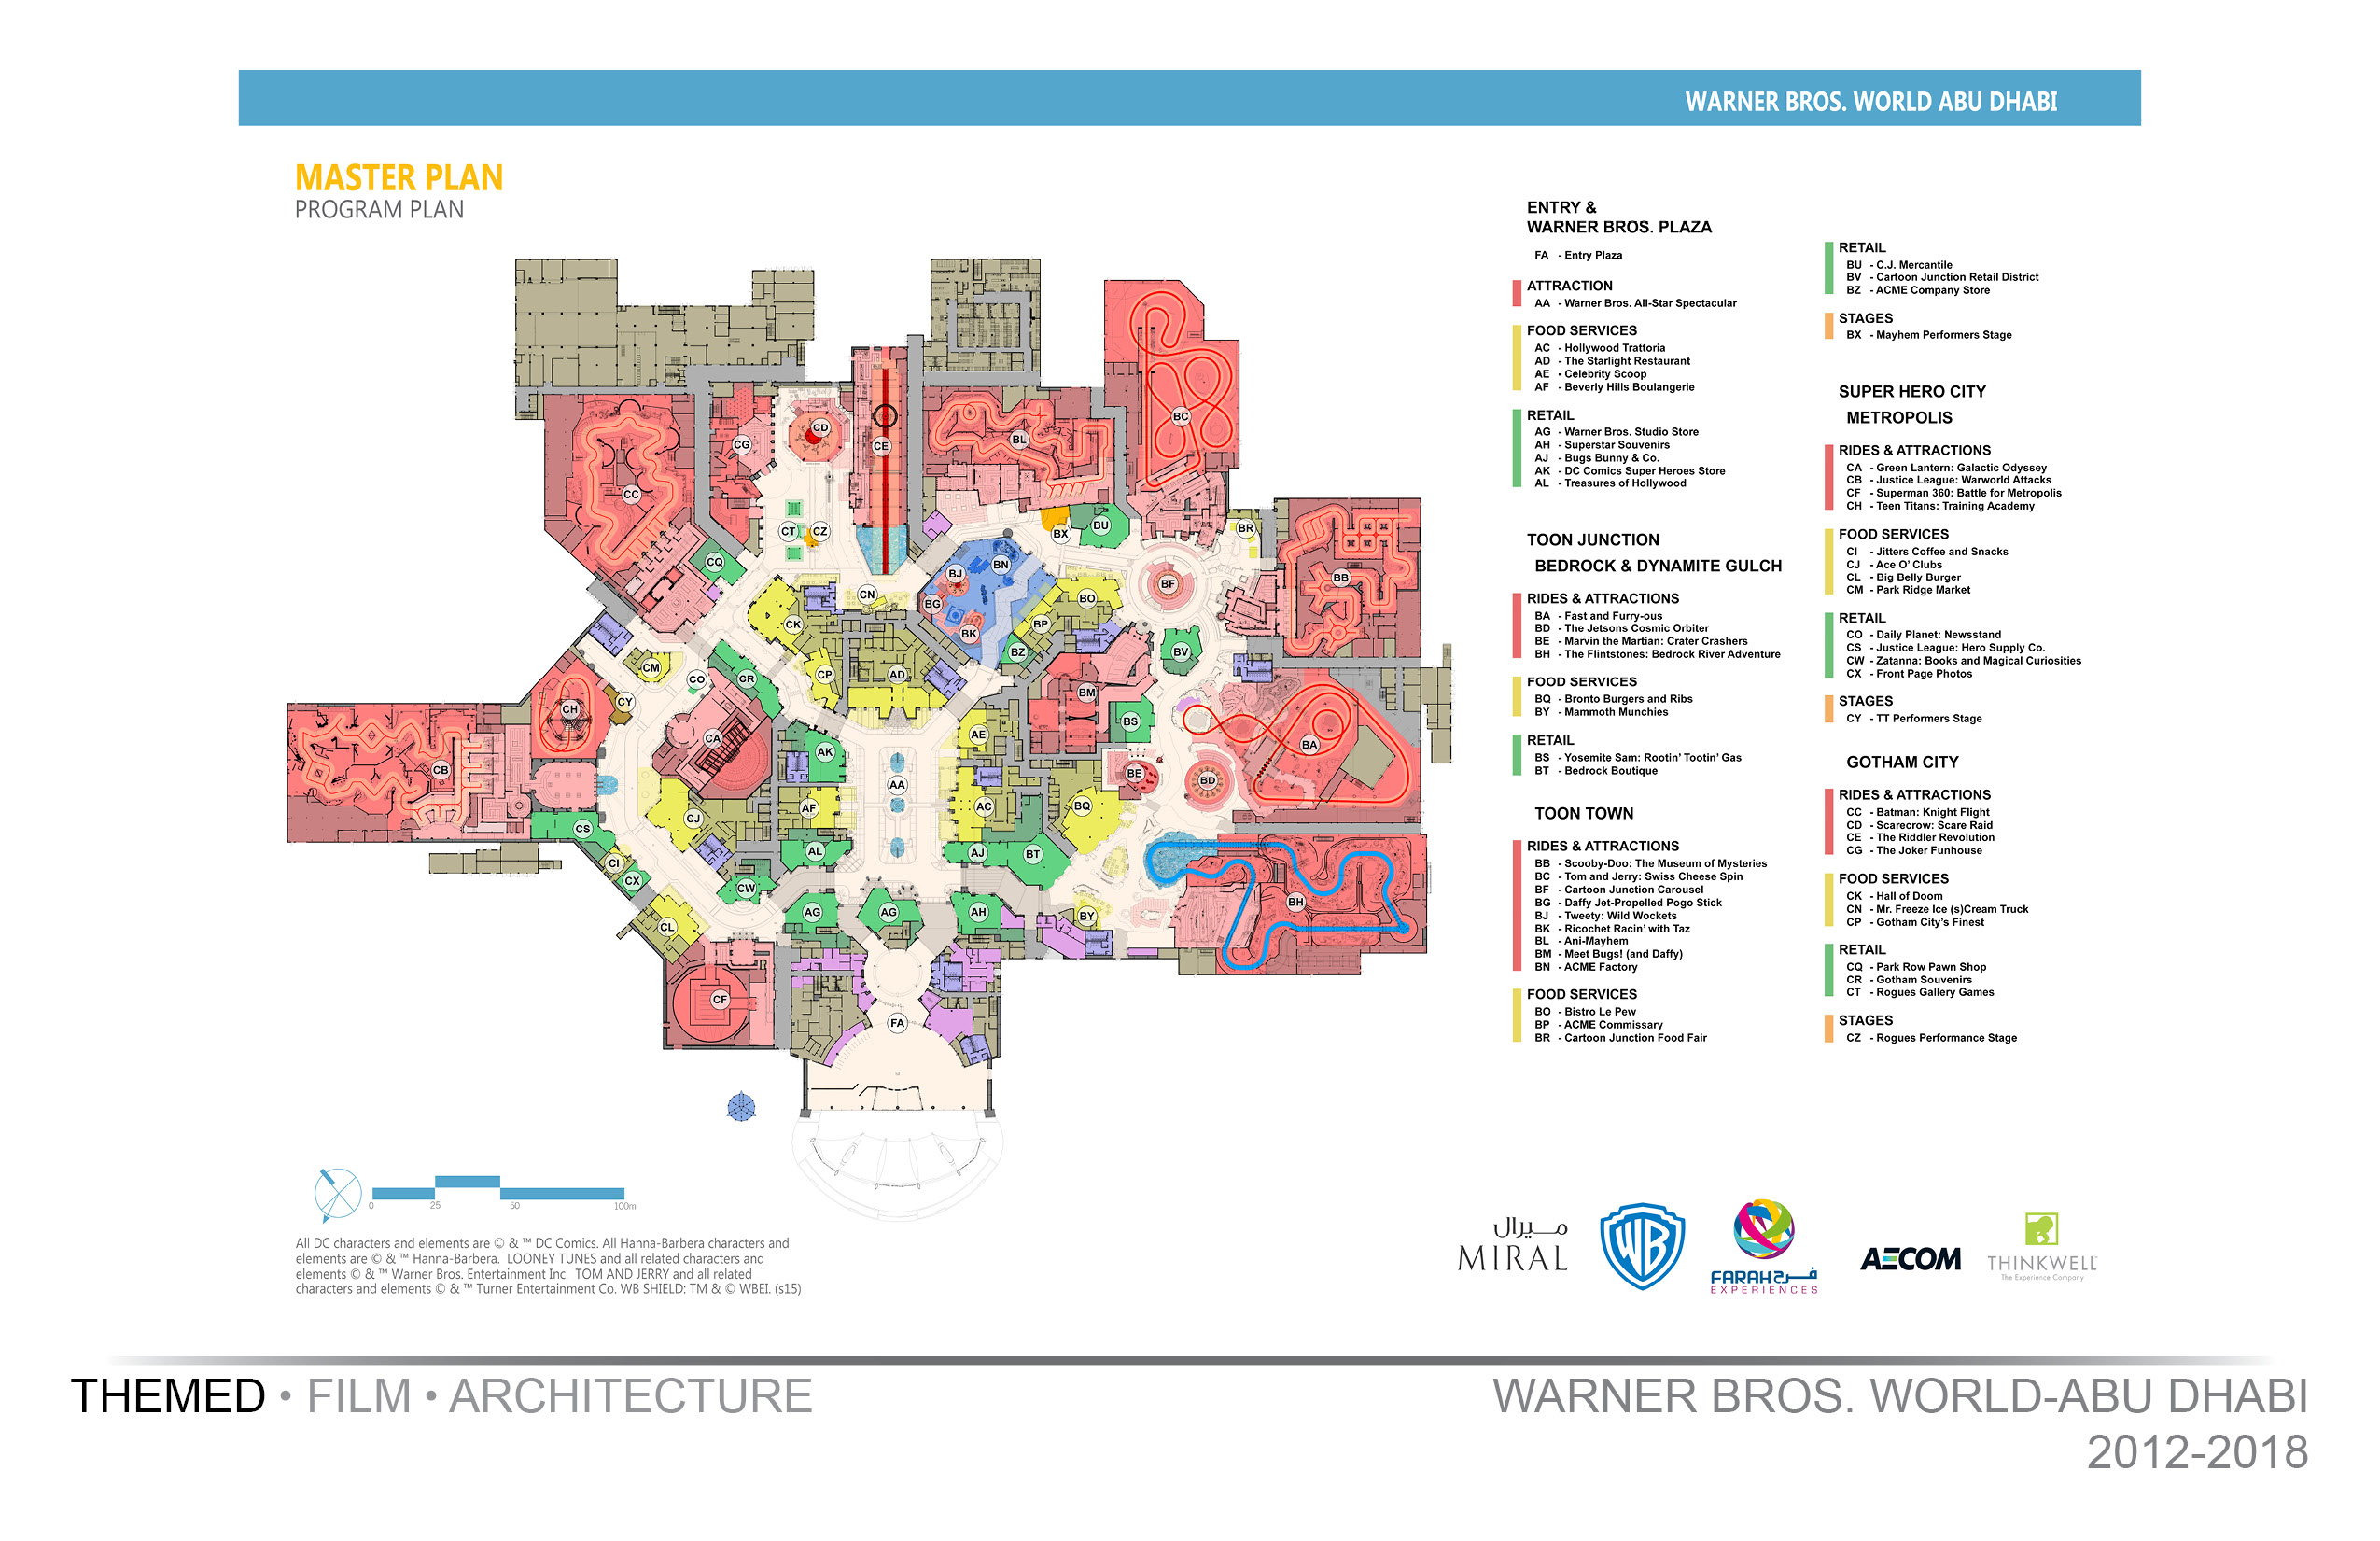 Warner Bros World-Master Plan